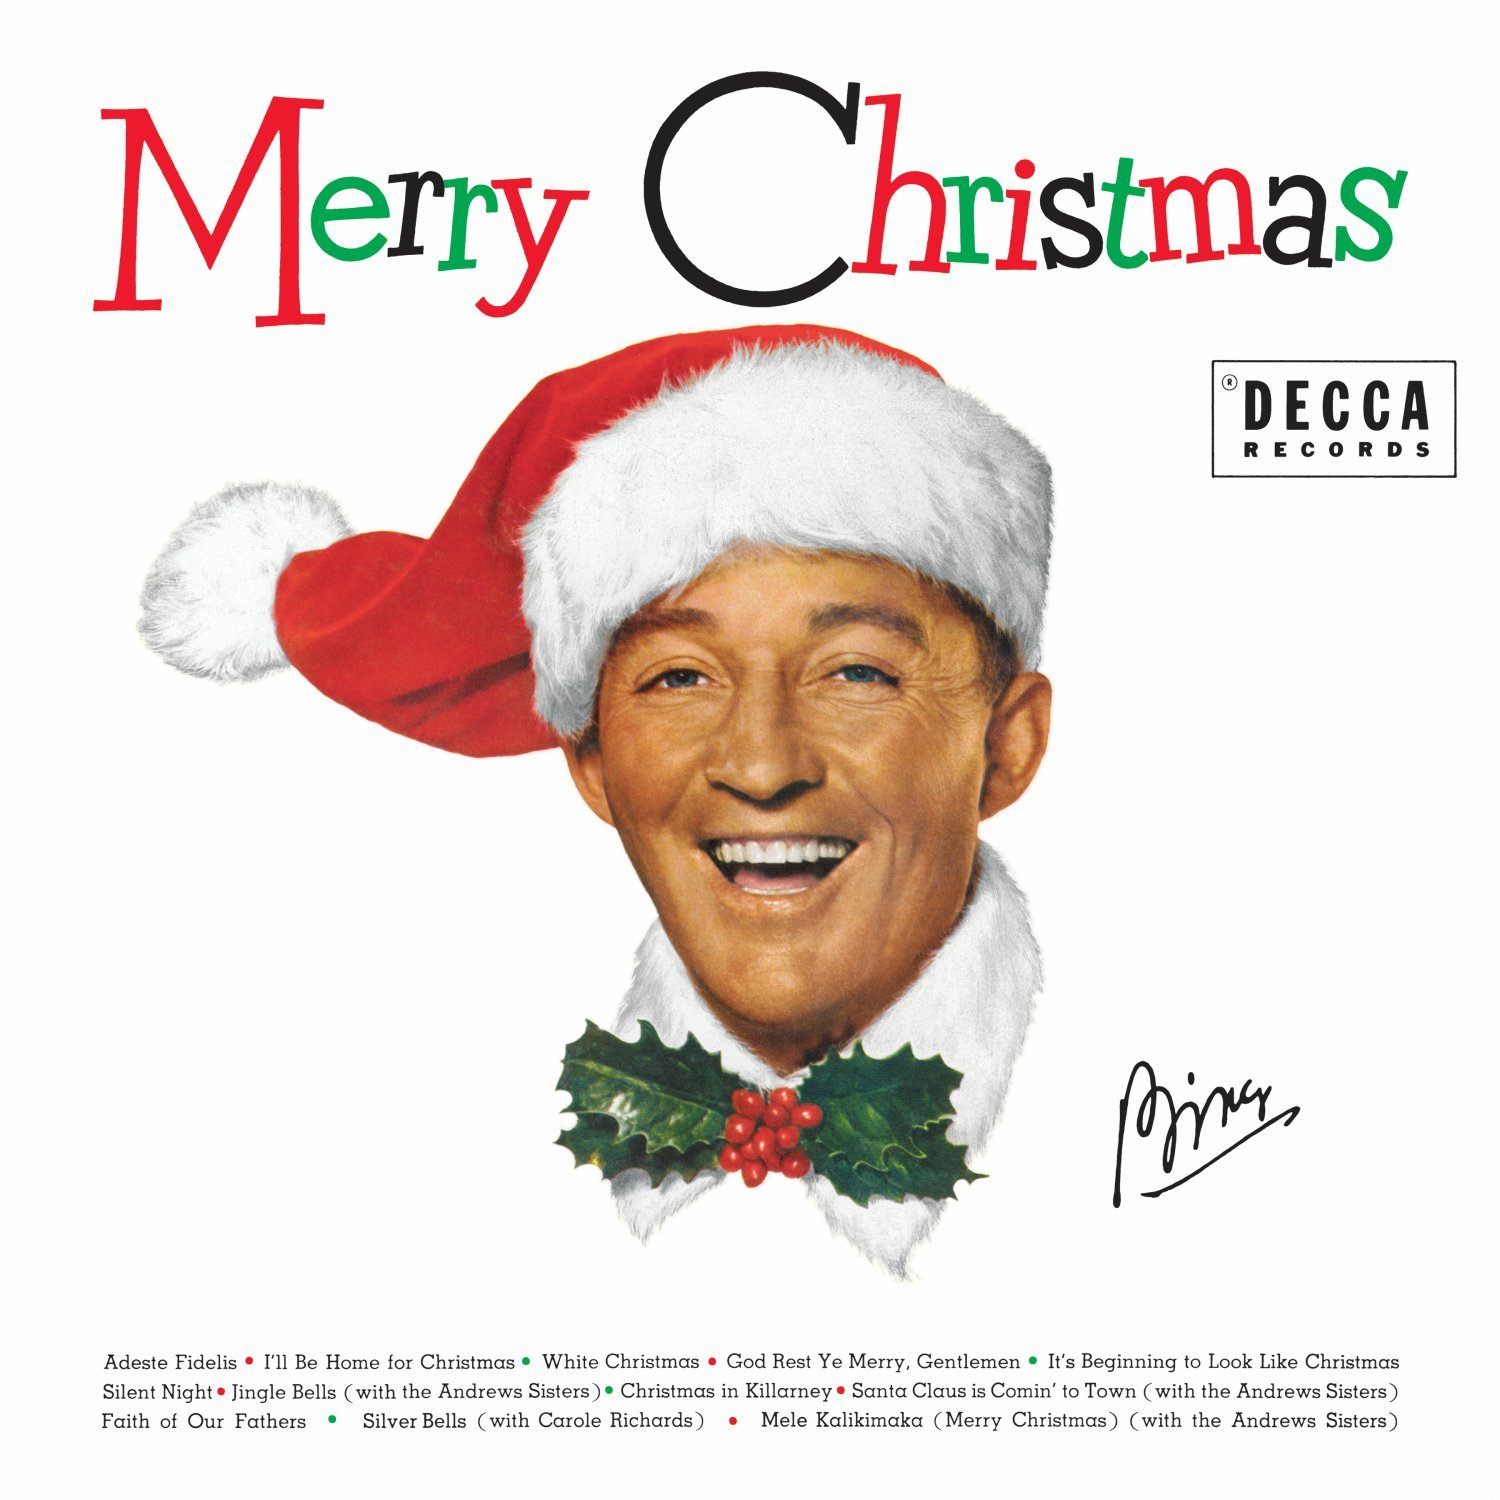 Merry Christmas (Vinyl): Bing Crosby: Amazon.ca: Music